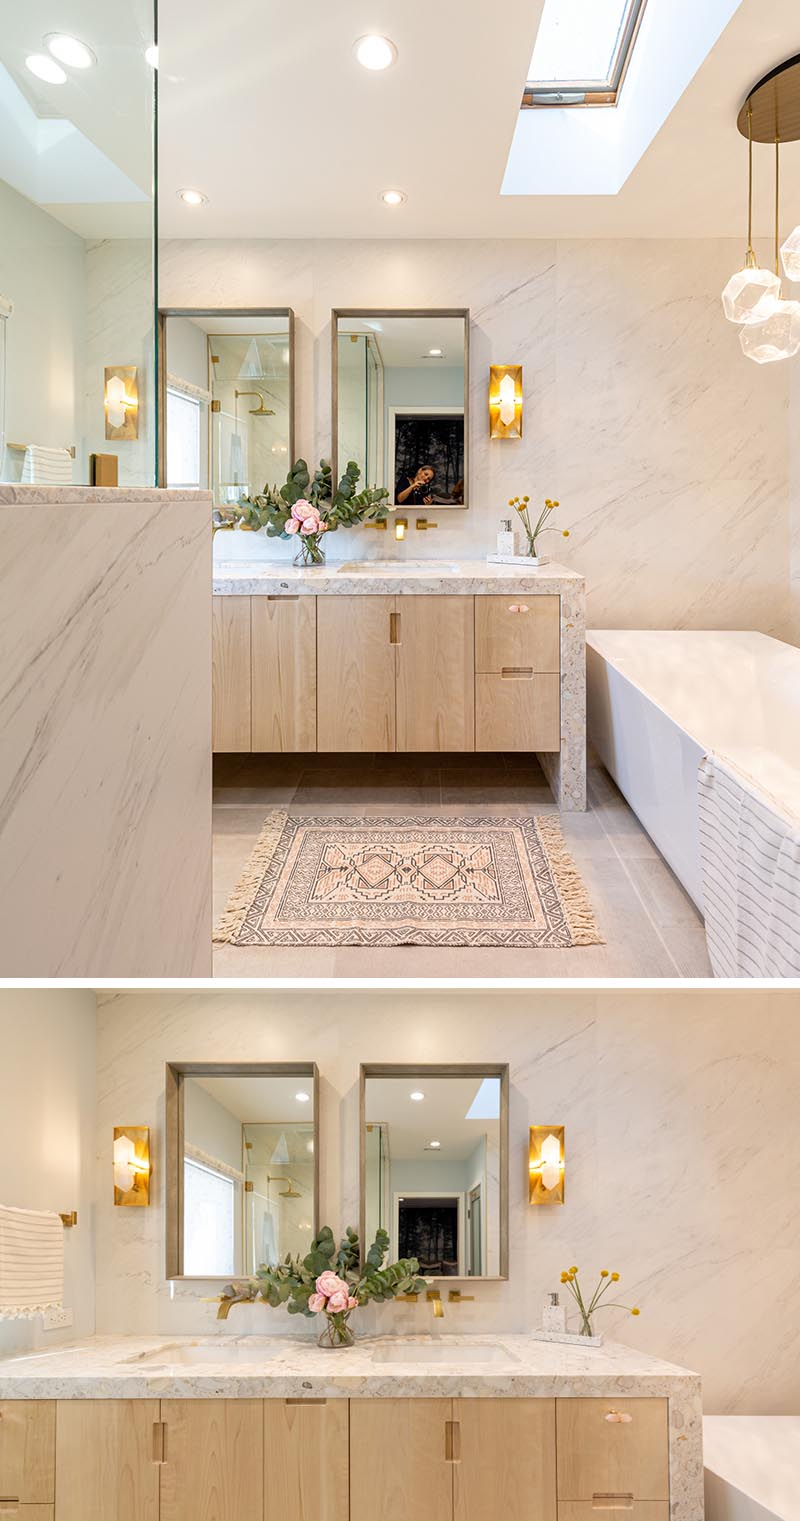 The soft color palette of this modern bathroom plays well with the floral and brass accents throughout. The wood vanity cabinets are hardware free, with just finger notches providing access to the storage within. #ModernBathroom #BathroomDesign #Skylight #Vanity